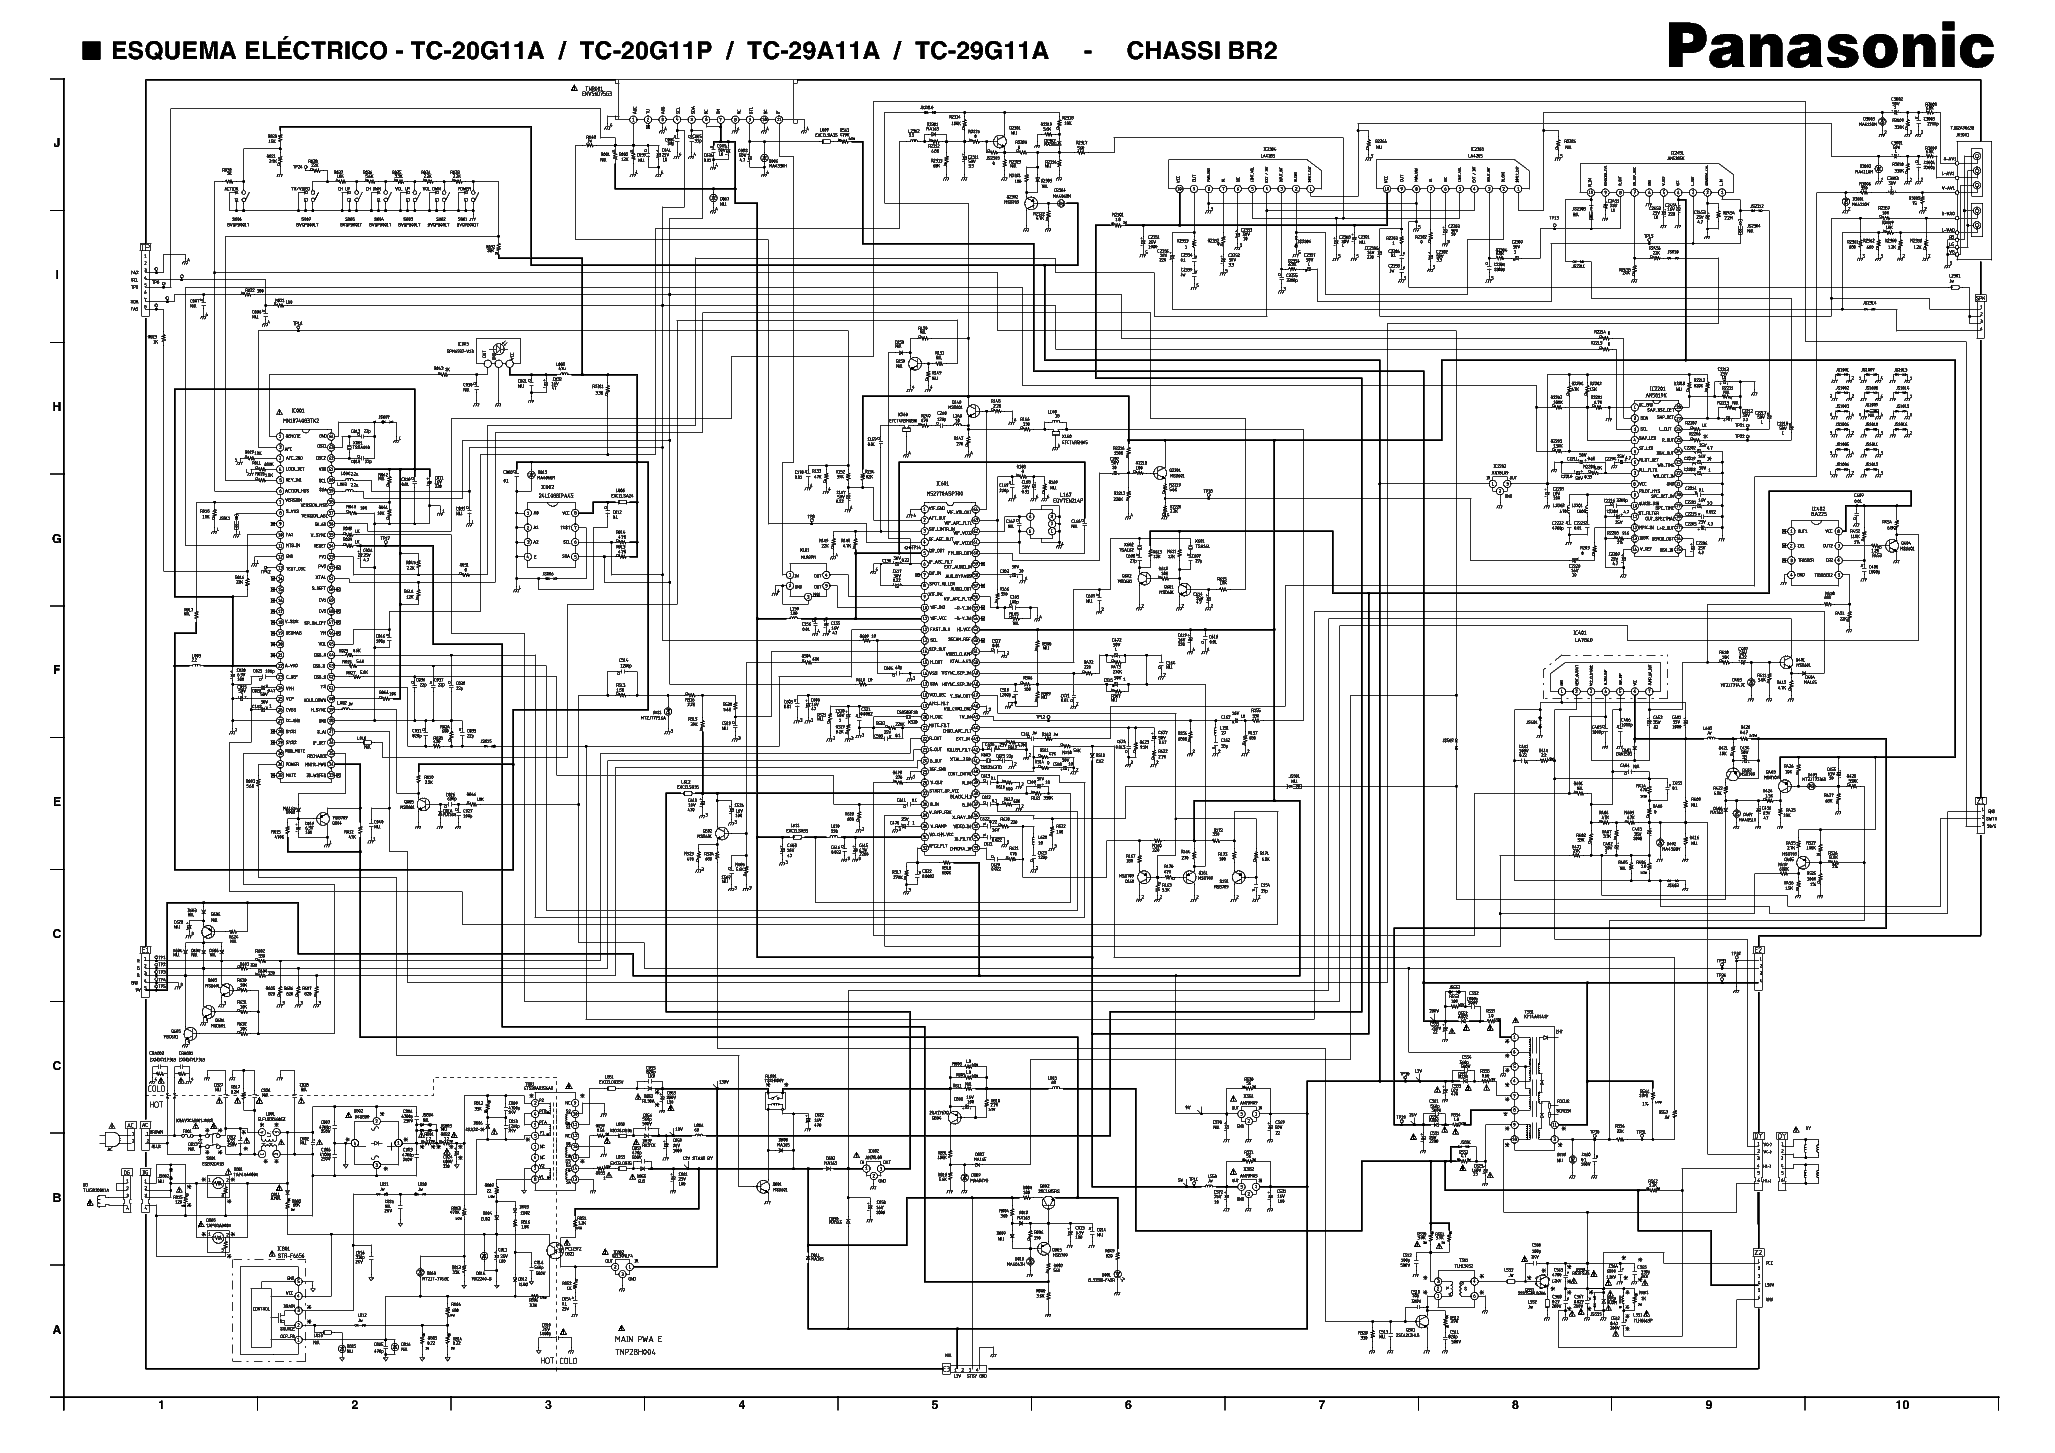 Free Electrical Drawing At For Personal Use 87 Corvette Dashboard Wiring Diagram Download 2055x1453 Panasonic Tv Circuit Zen Components